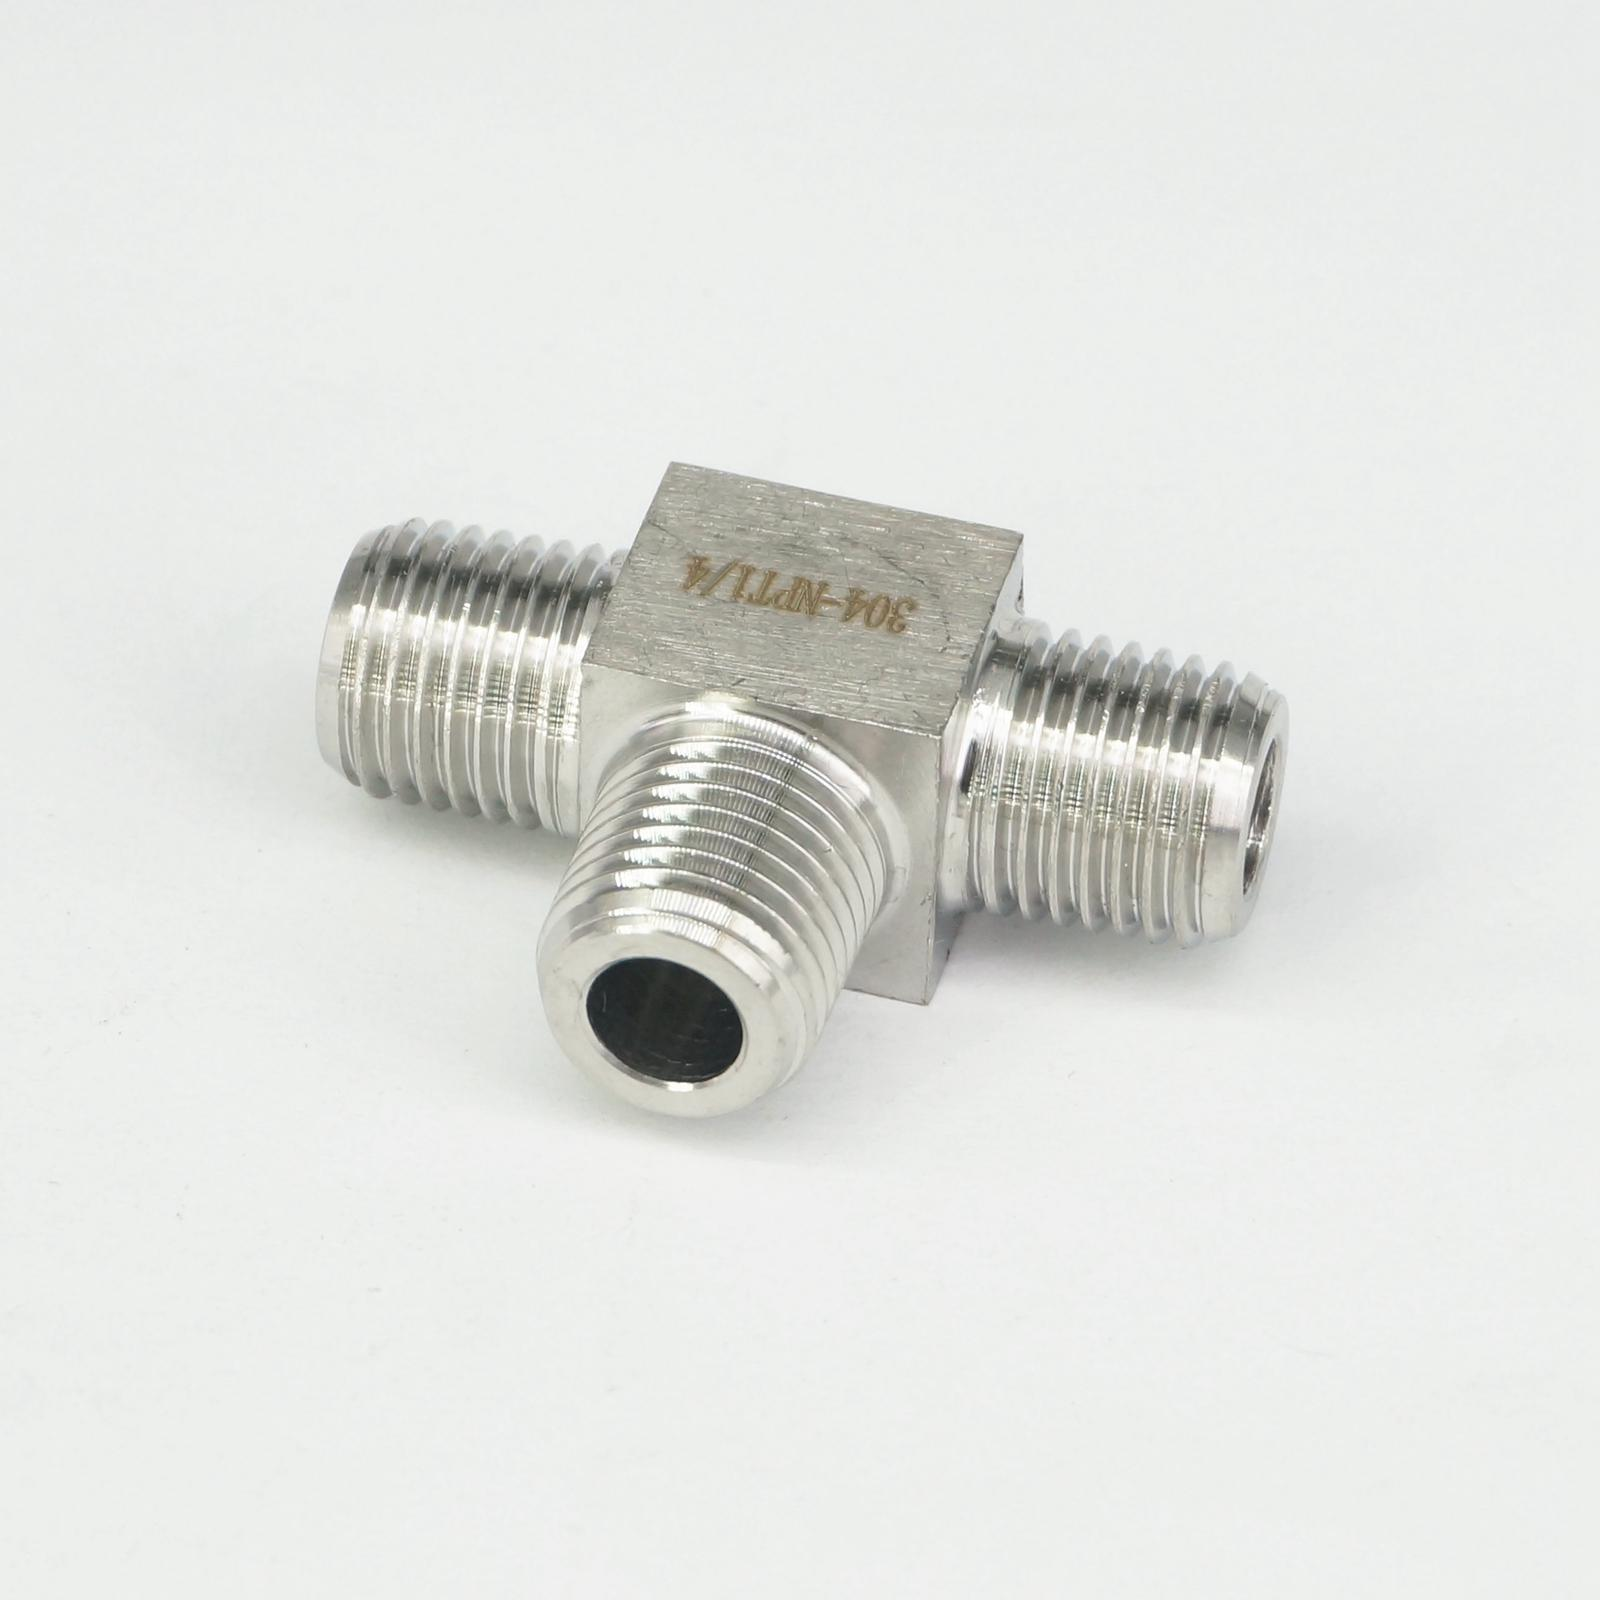 """1//2/"""" NPT Male Tee 3 Way Pipe Fitting 304 Stainless Steel Water Gas Oil"""